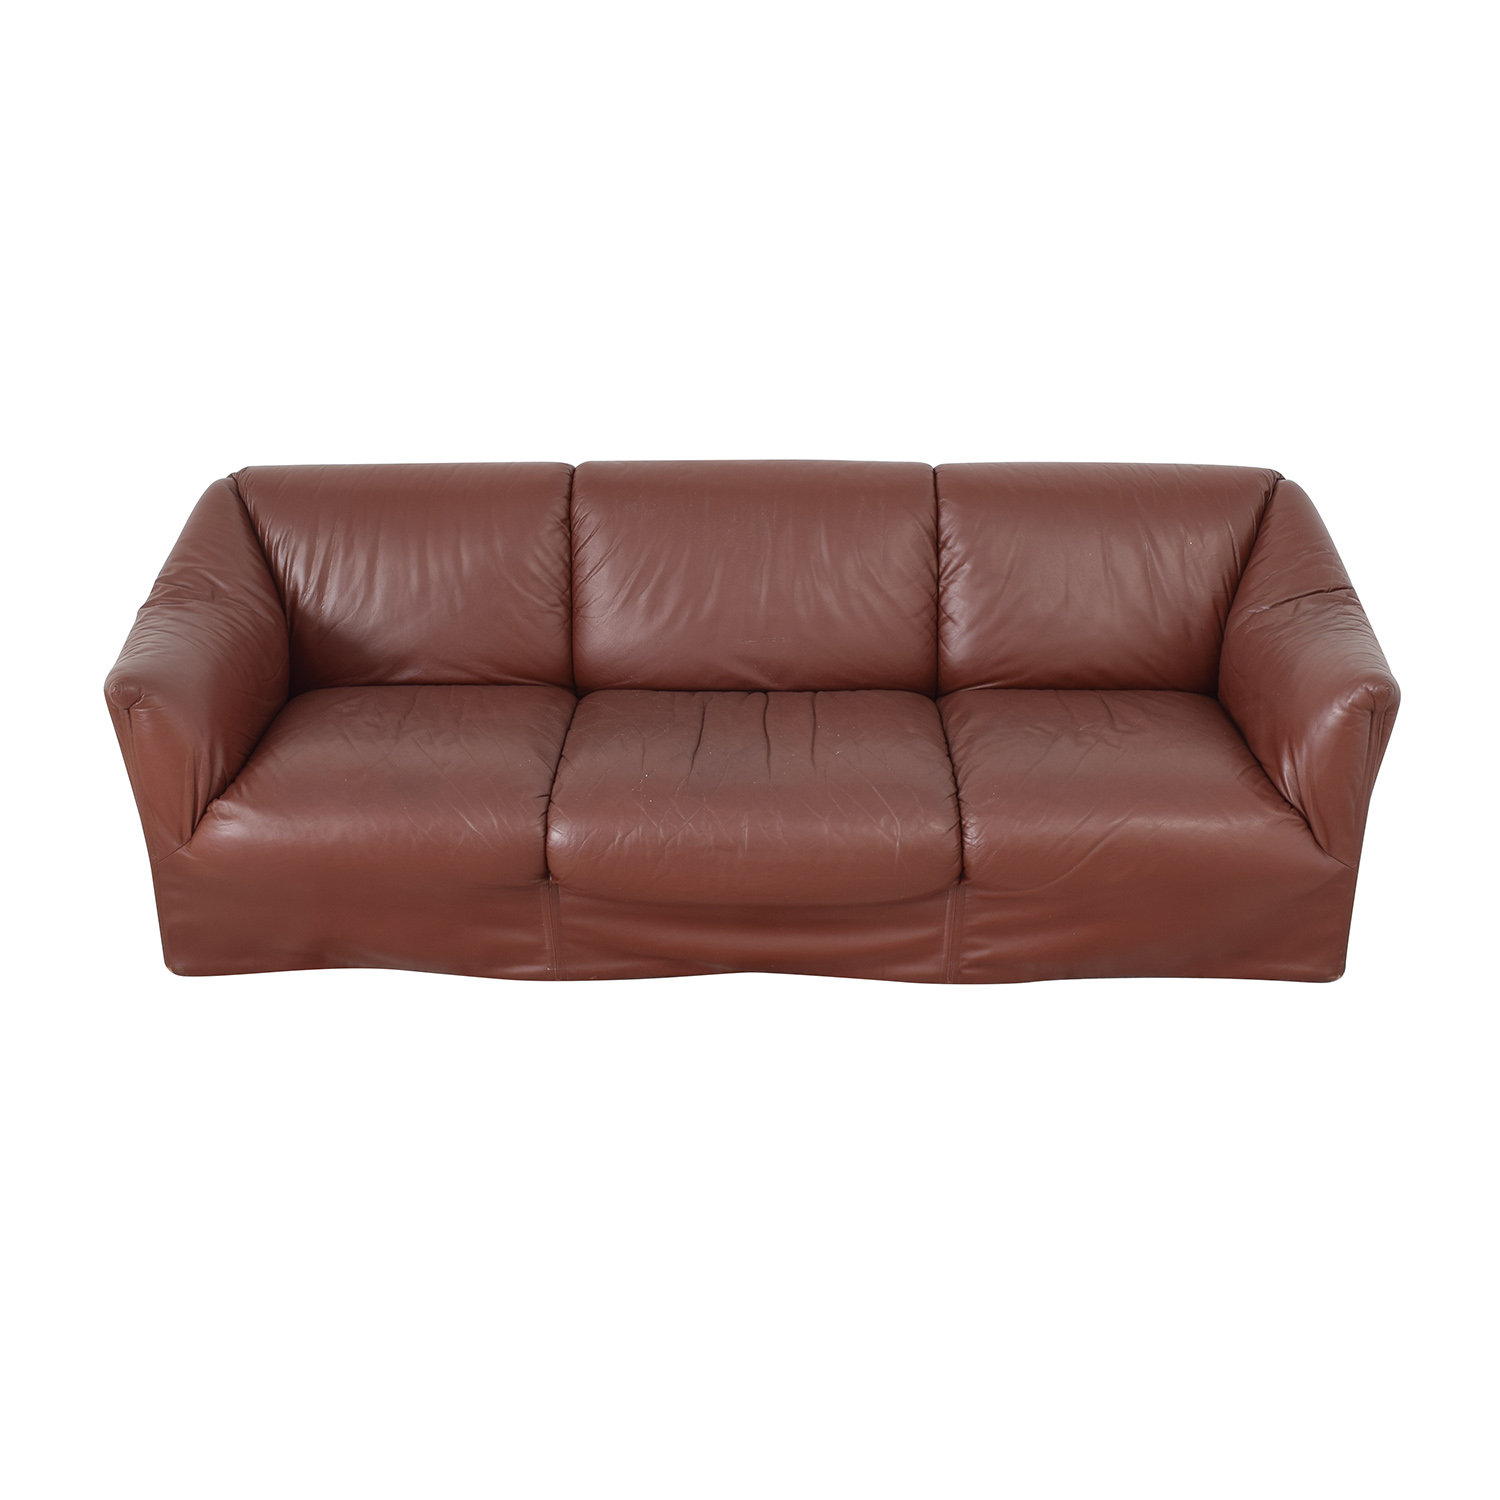 Mario Bellini for Cassina Tentazione Sofa sale